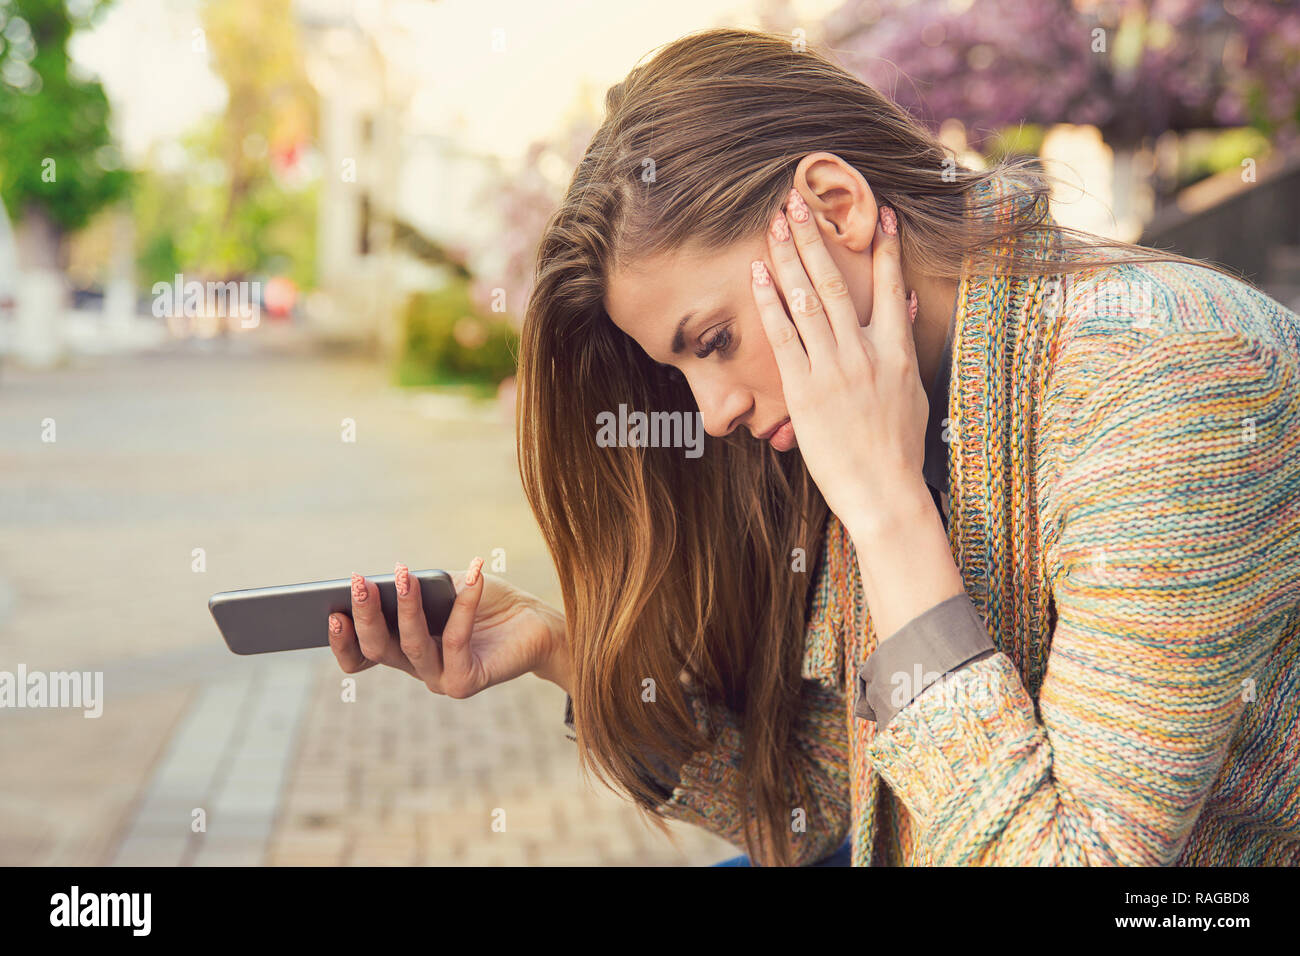 Side view of young woman holding phone and looking happy with breakup while sitting on street - Stock Image